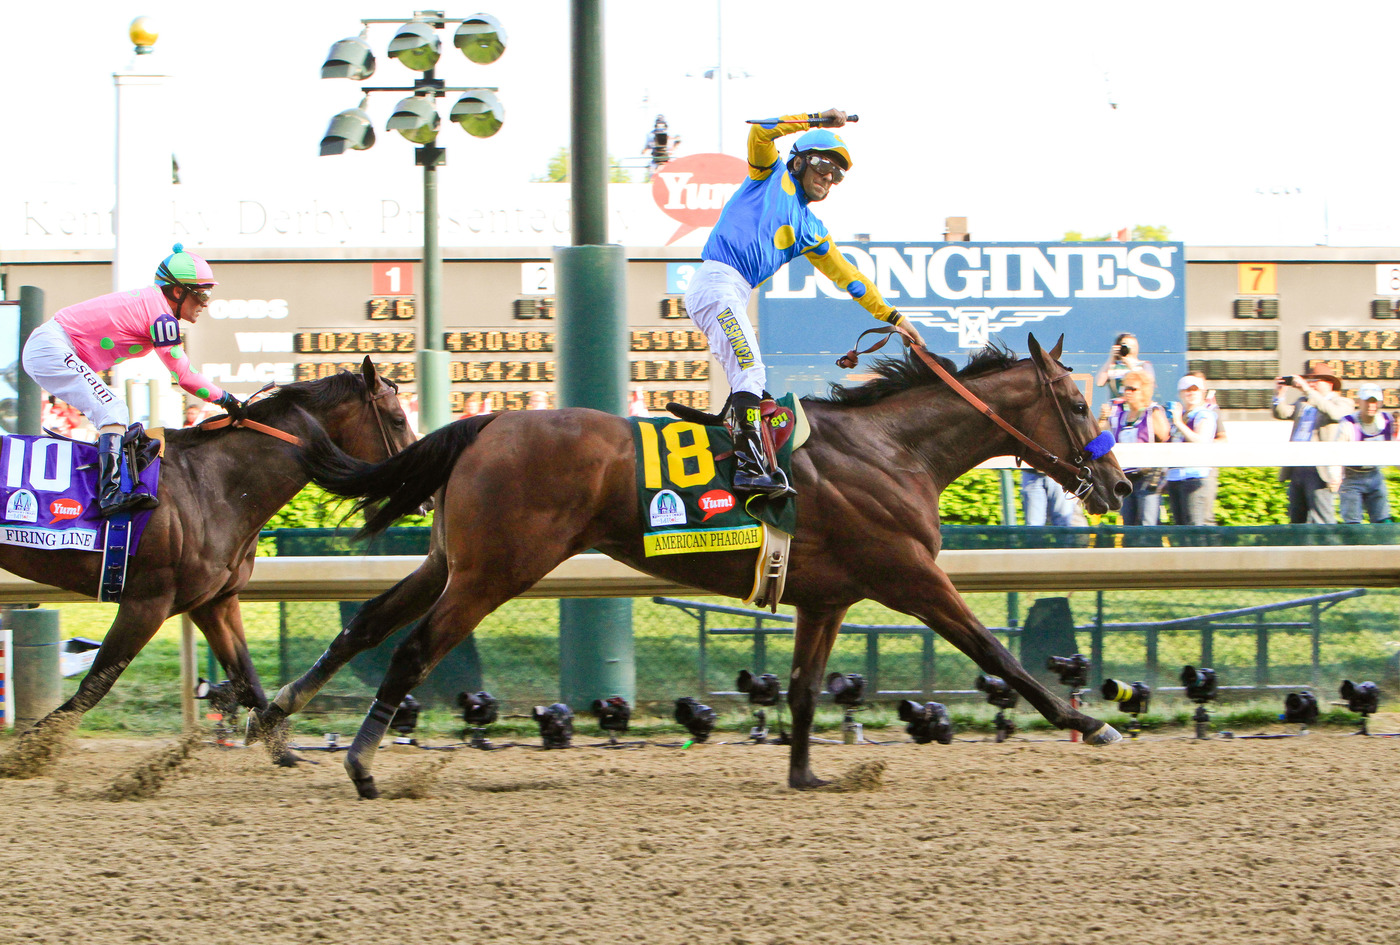 Longines Flat Racing Event: American Pharoah gallops to victory in front of record crowd at the 141st Kentucky Derby  1